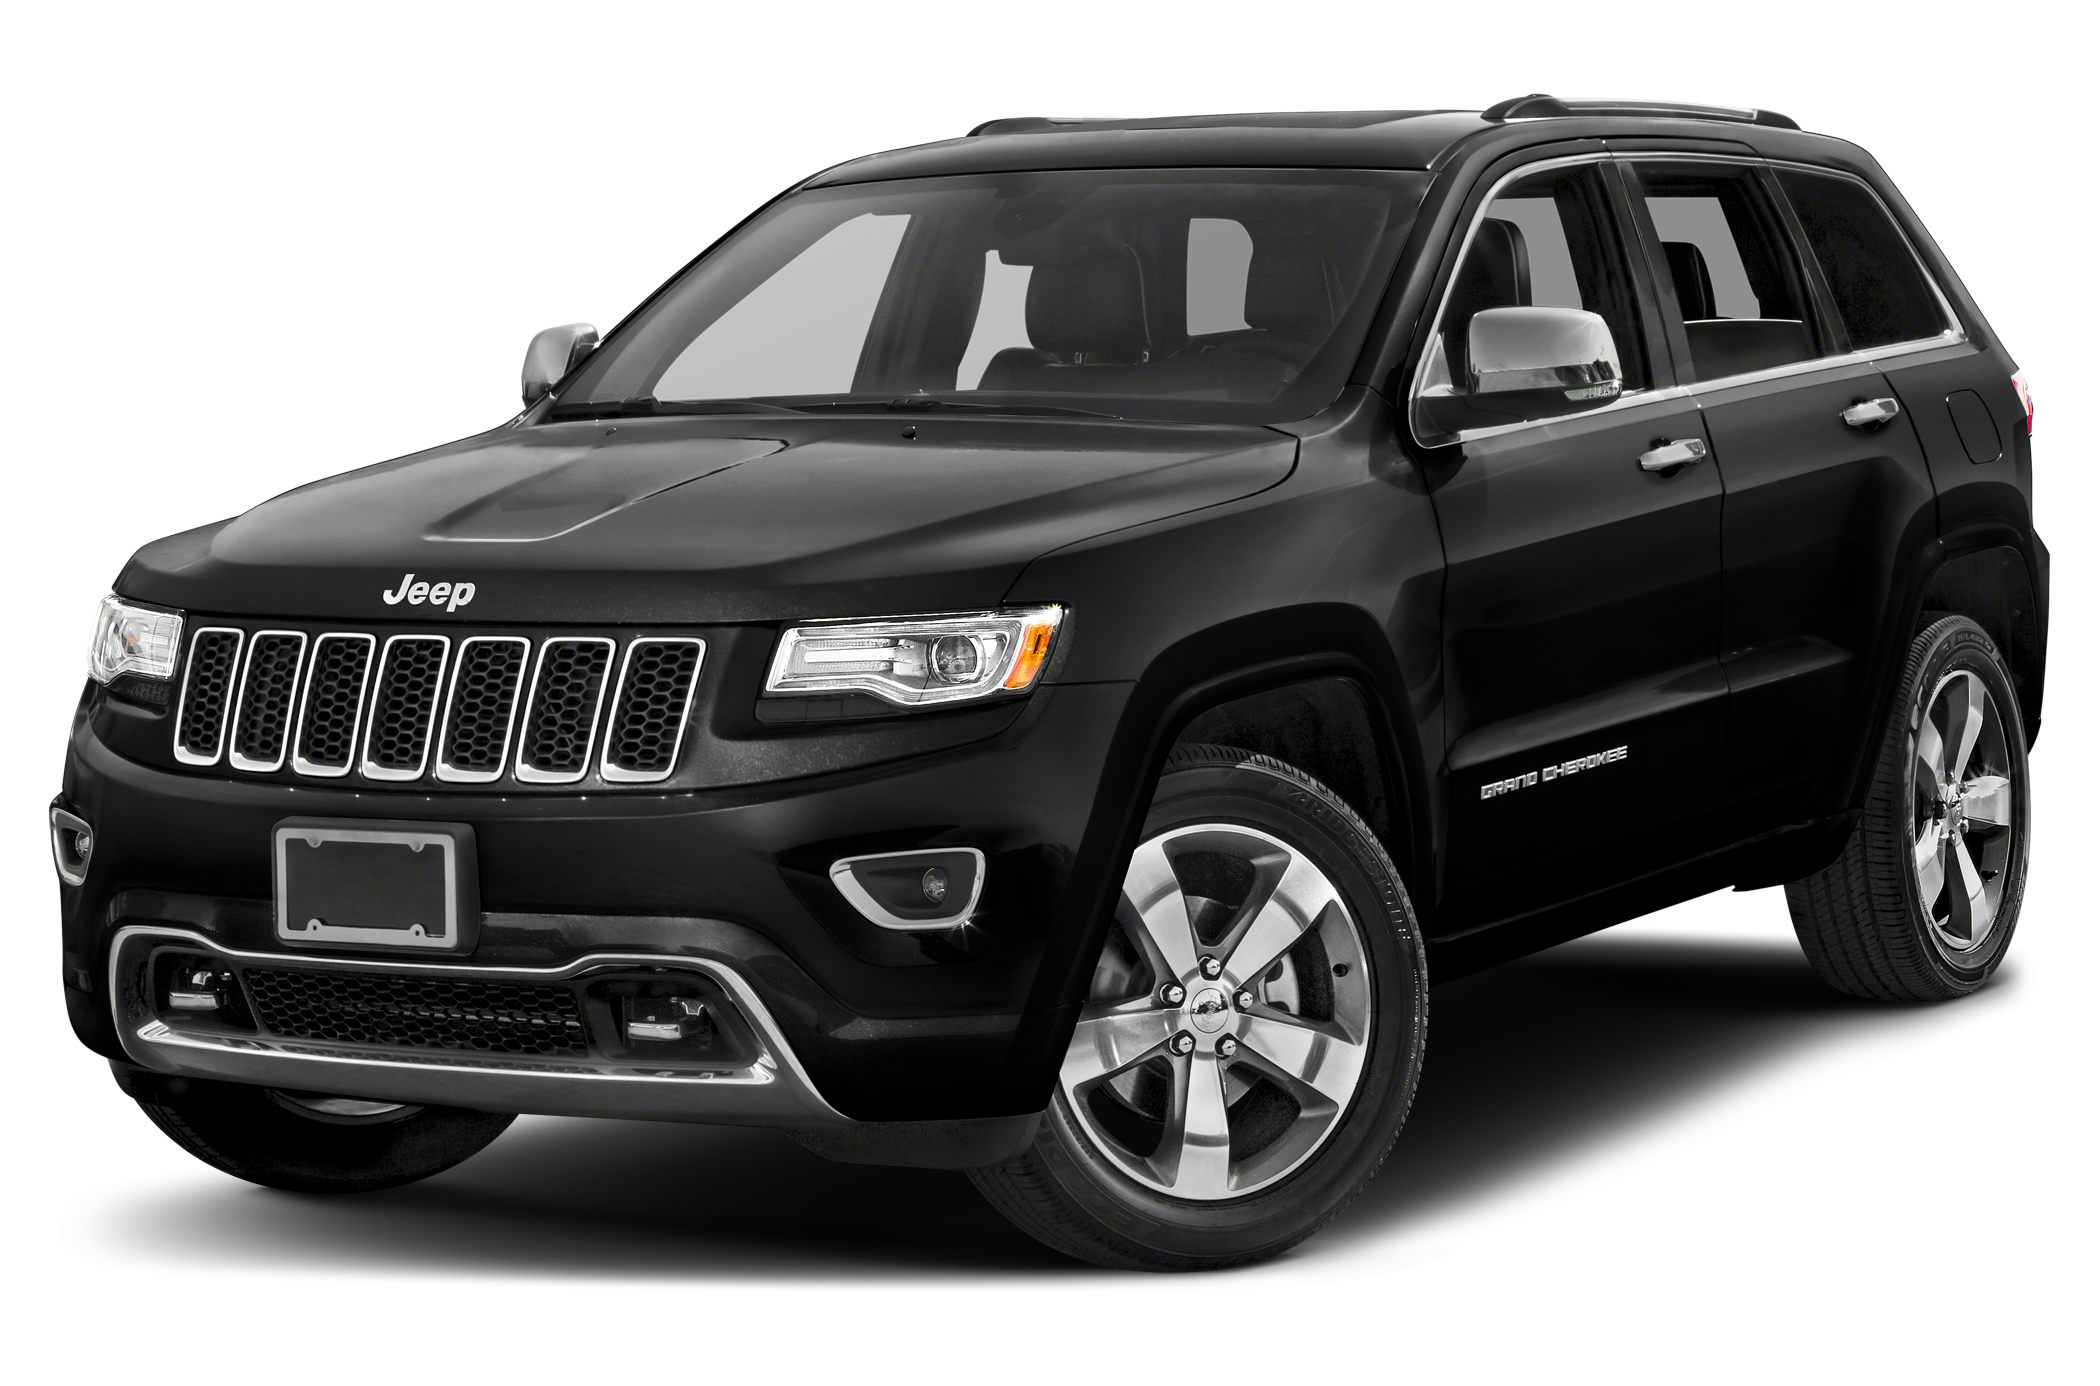 most grand suv blog overland cherokee limited ever jeep granite awarded wallpaper the